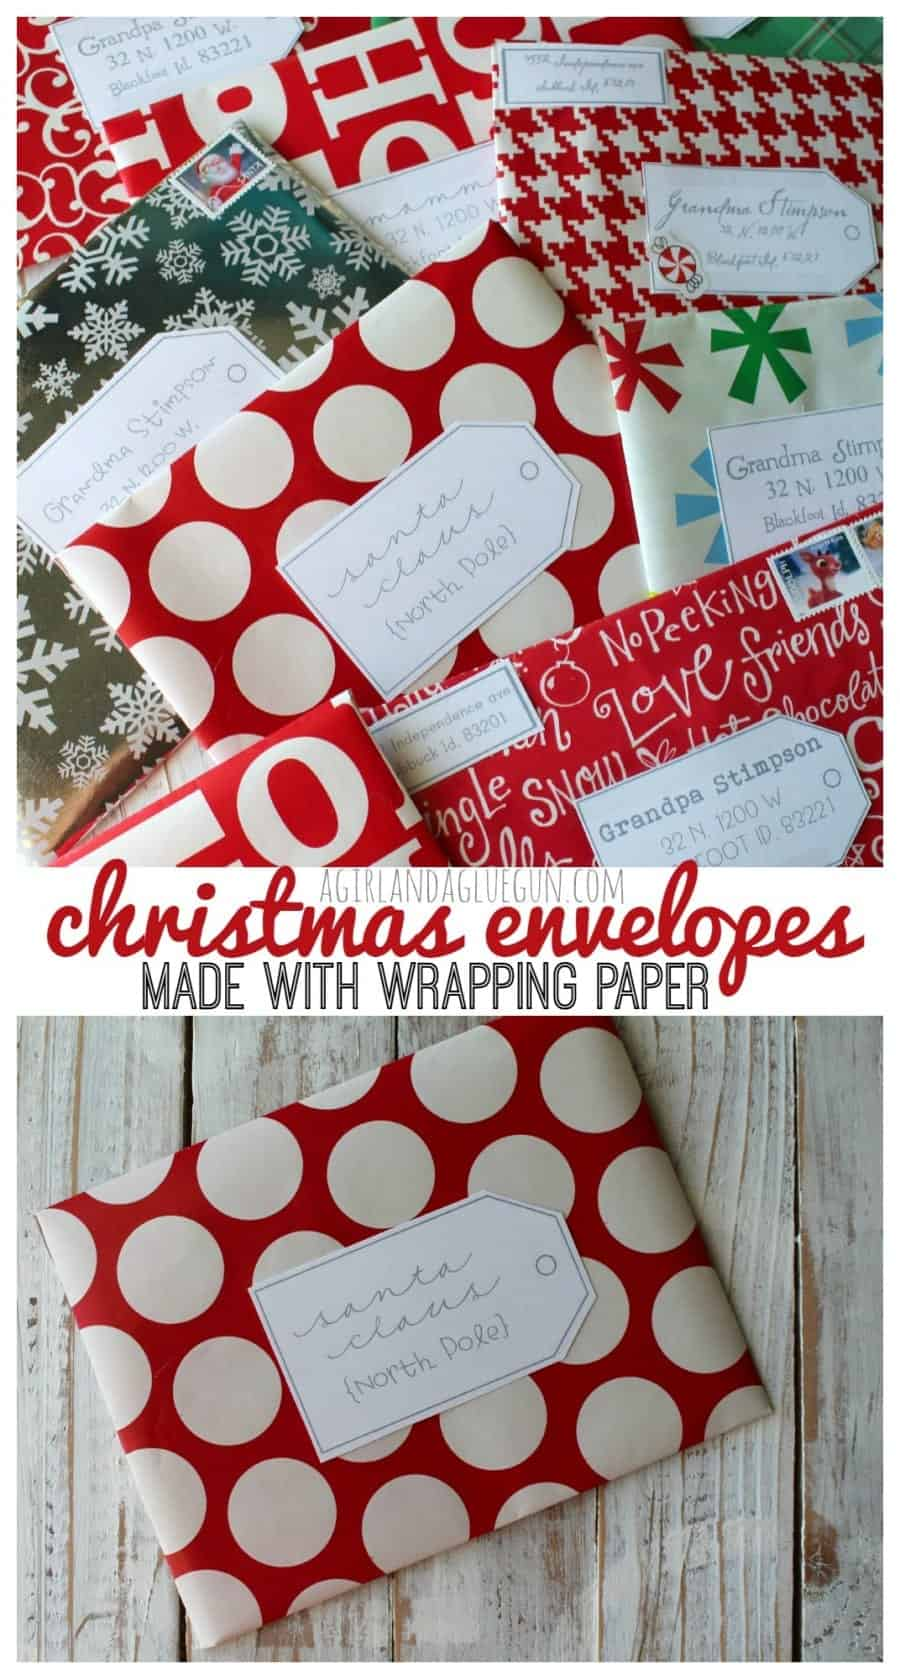 Christmas envelopes made with wrapping paper